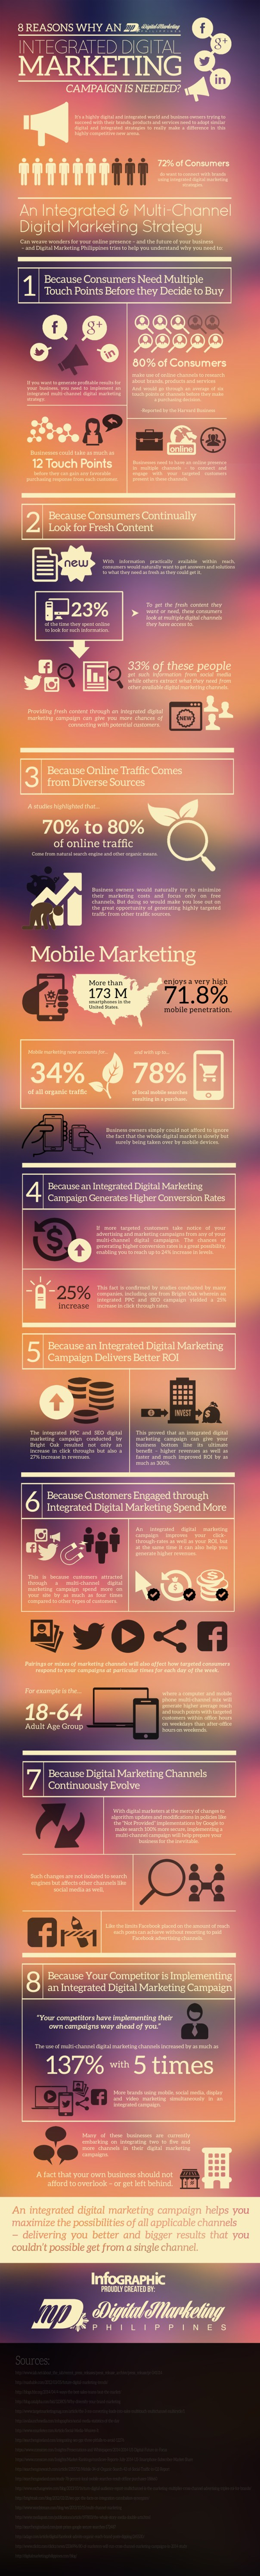 8 Reasons Why An Integrated Digital Marketing Campaign Is Needed? (Infographic) image 8 Reasons Why an Integrated Digital Marketing Campaign is Needed